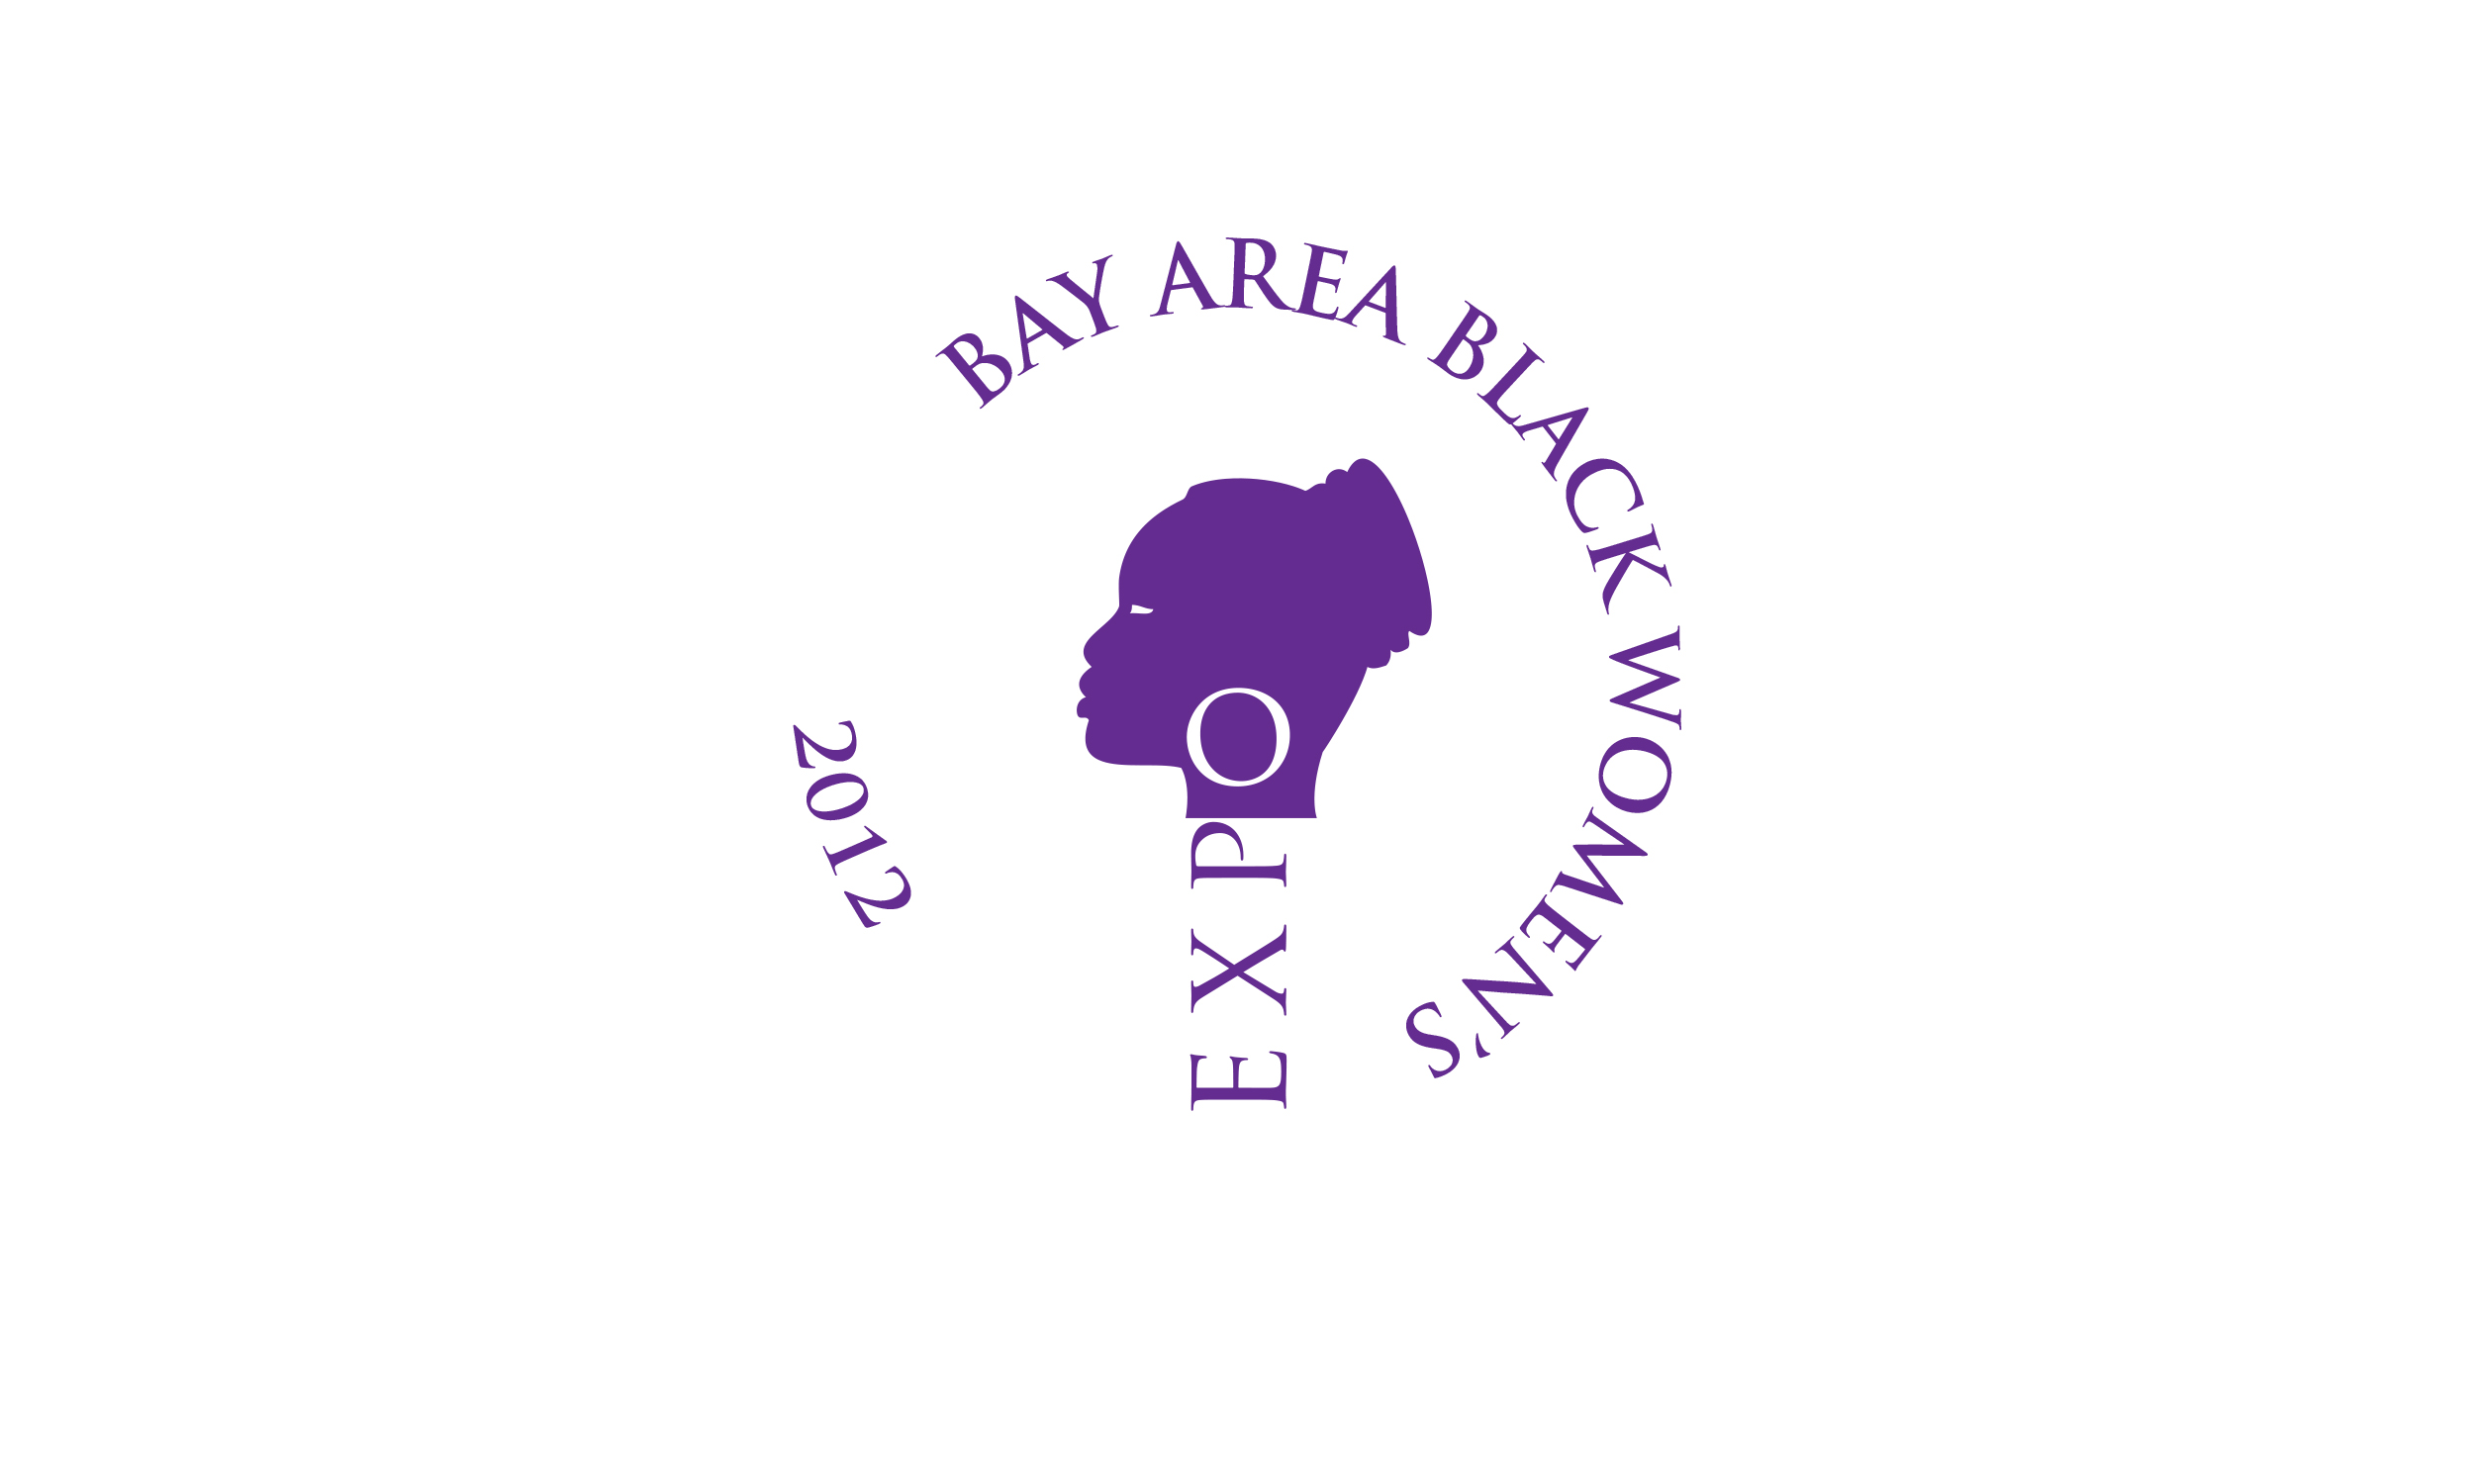 Bay Area Productions